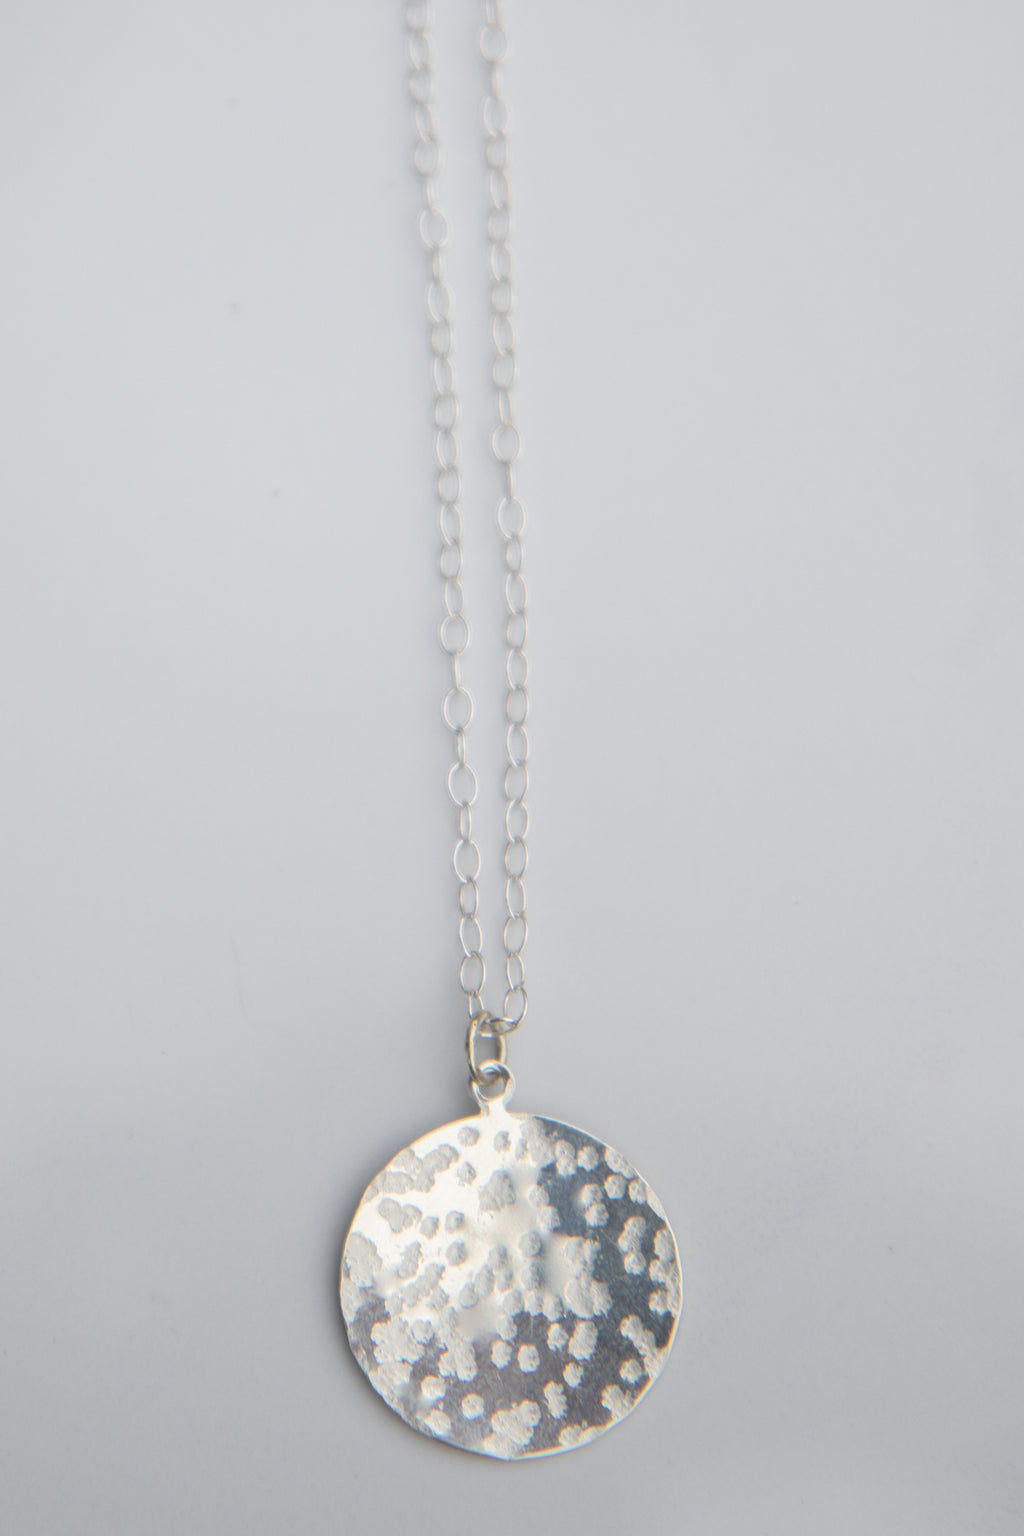 Isla medallion Necklace - Silver